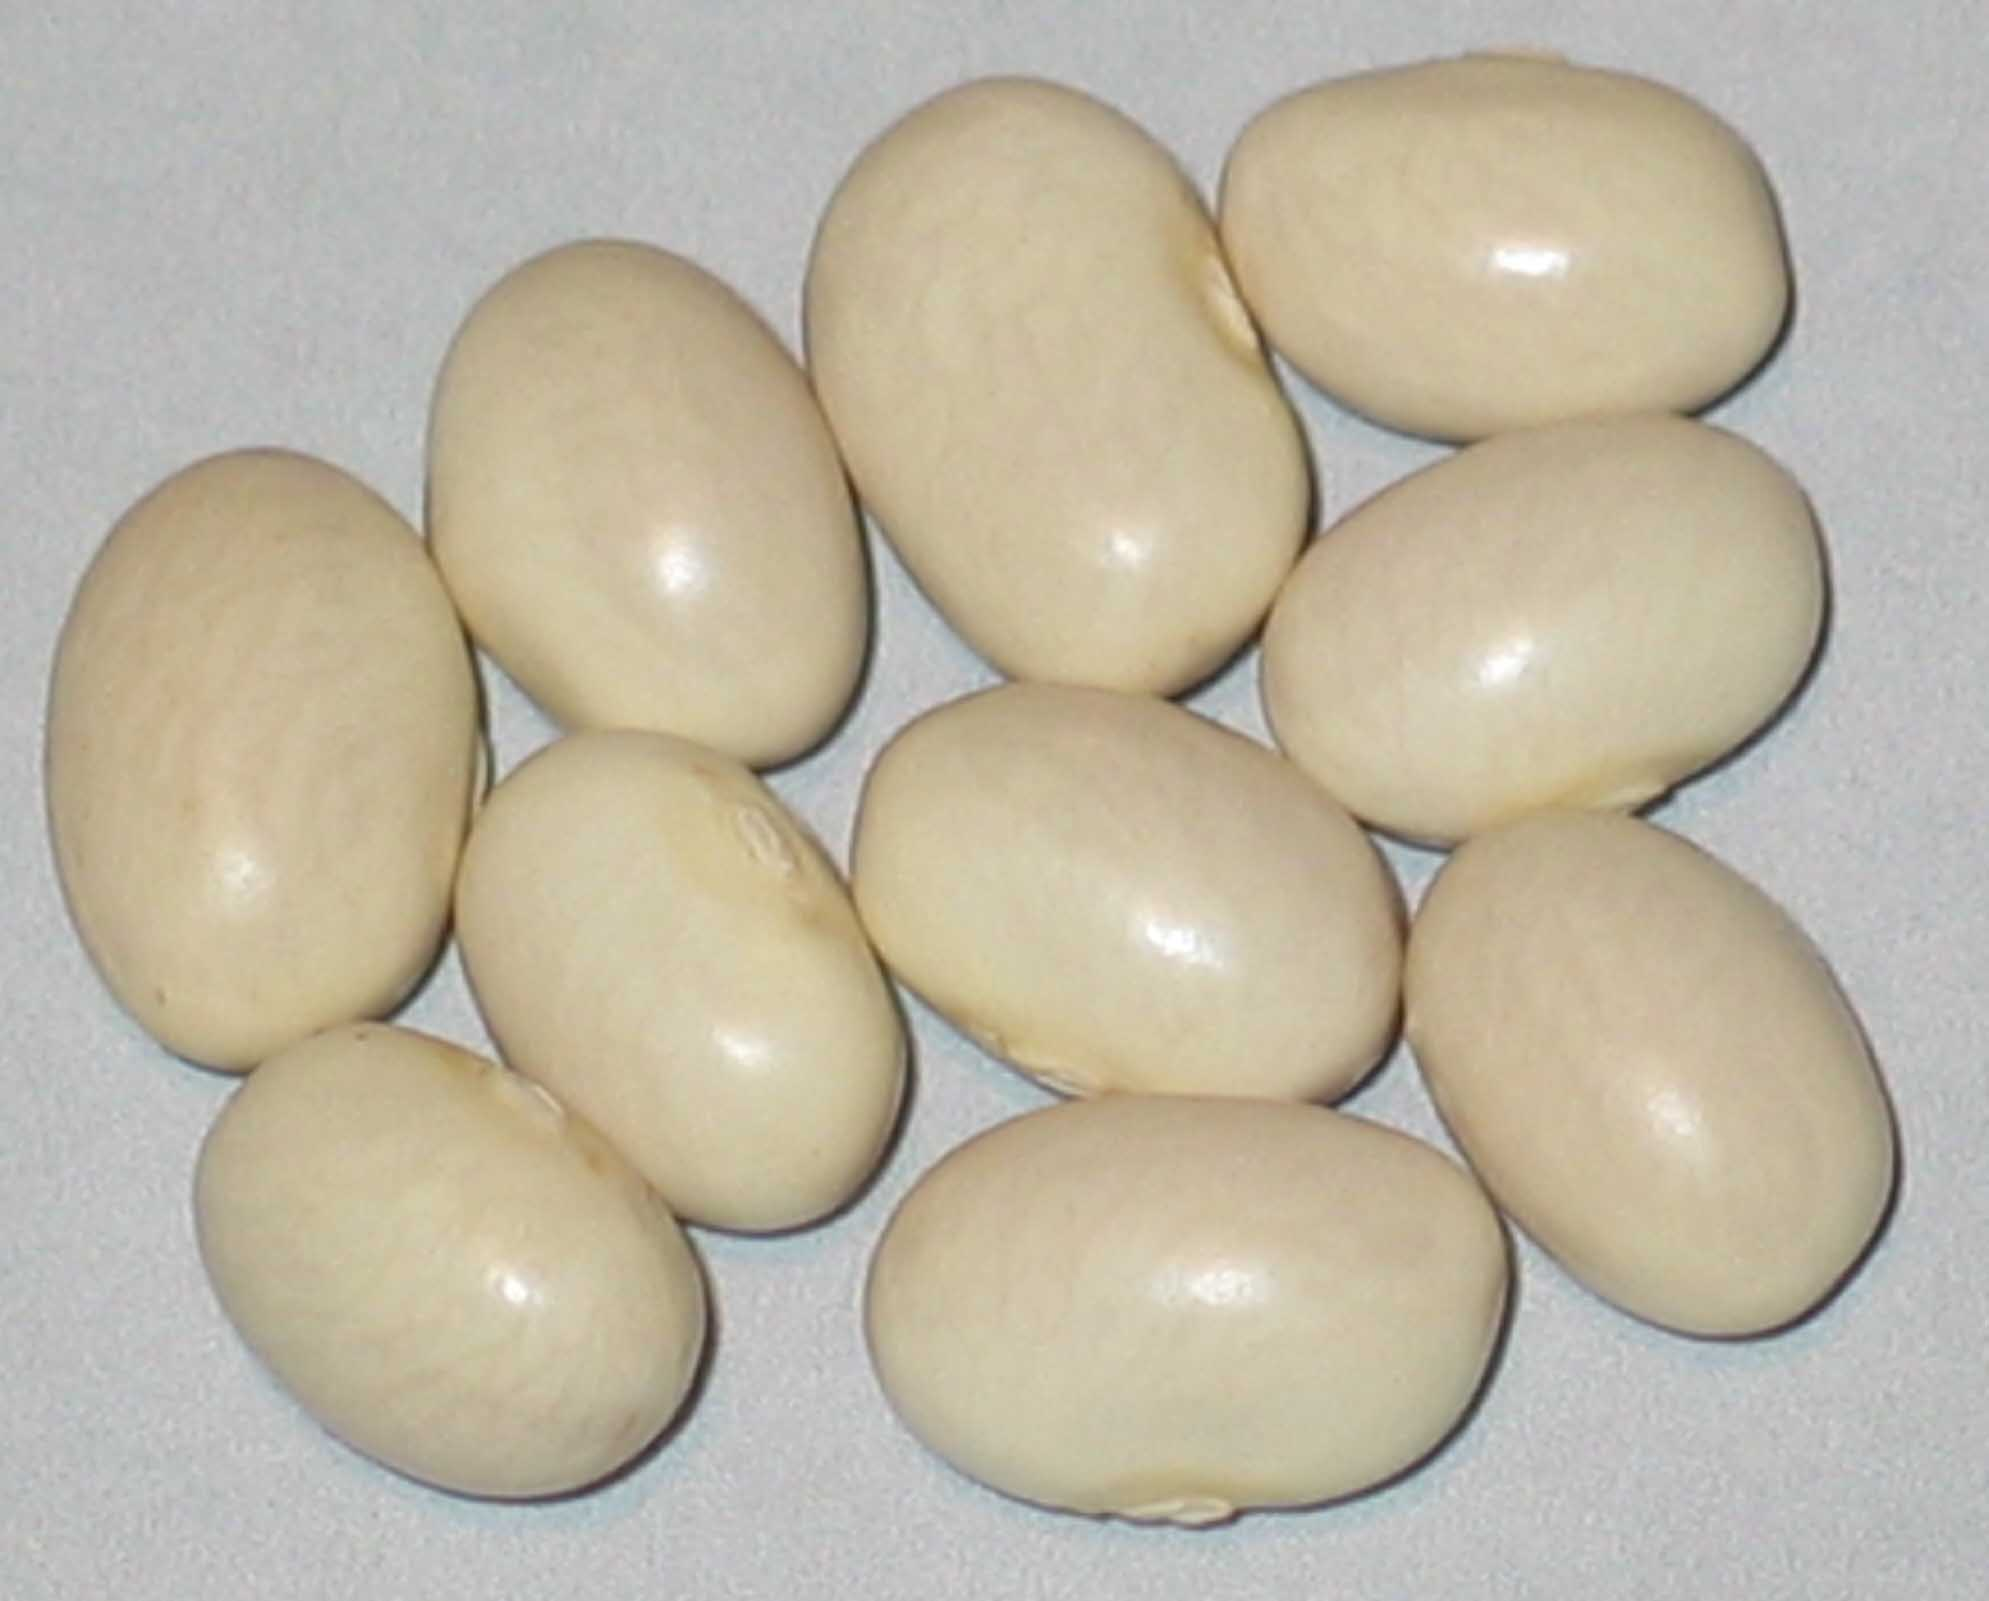 image of Idaho Marrow beans